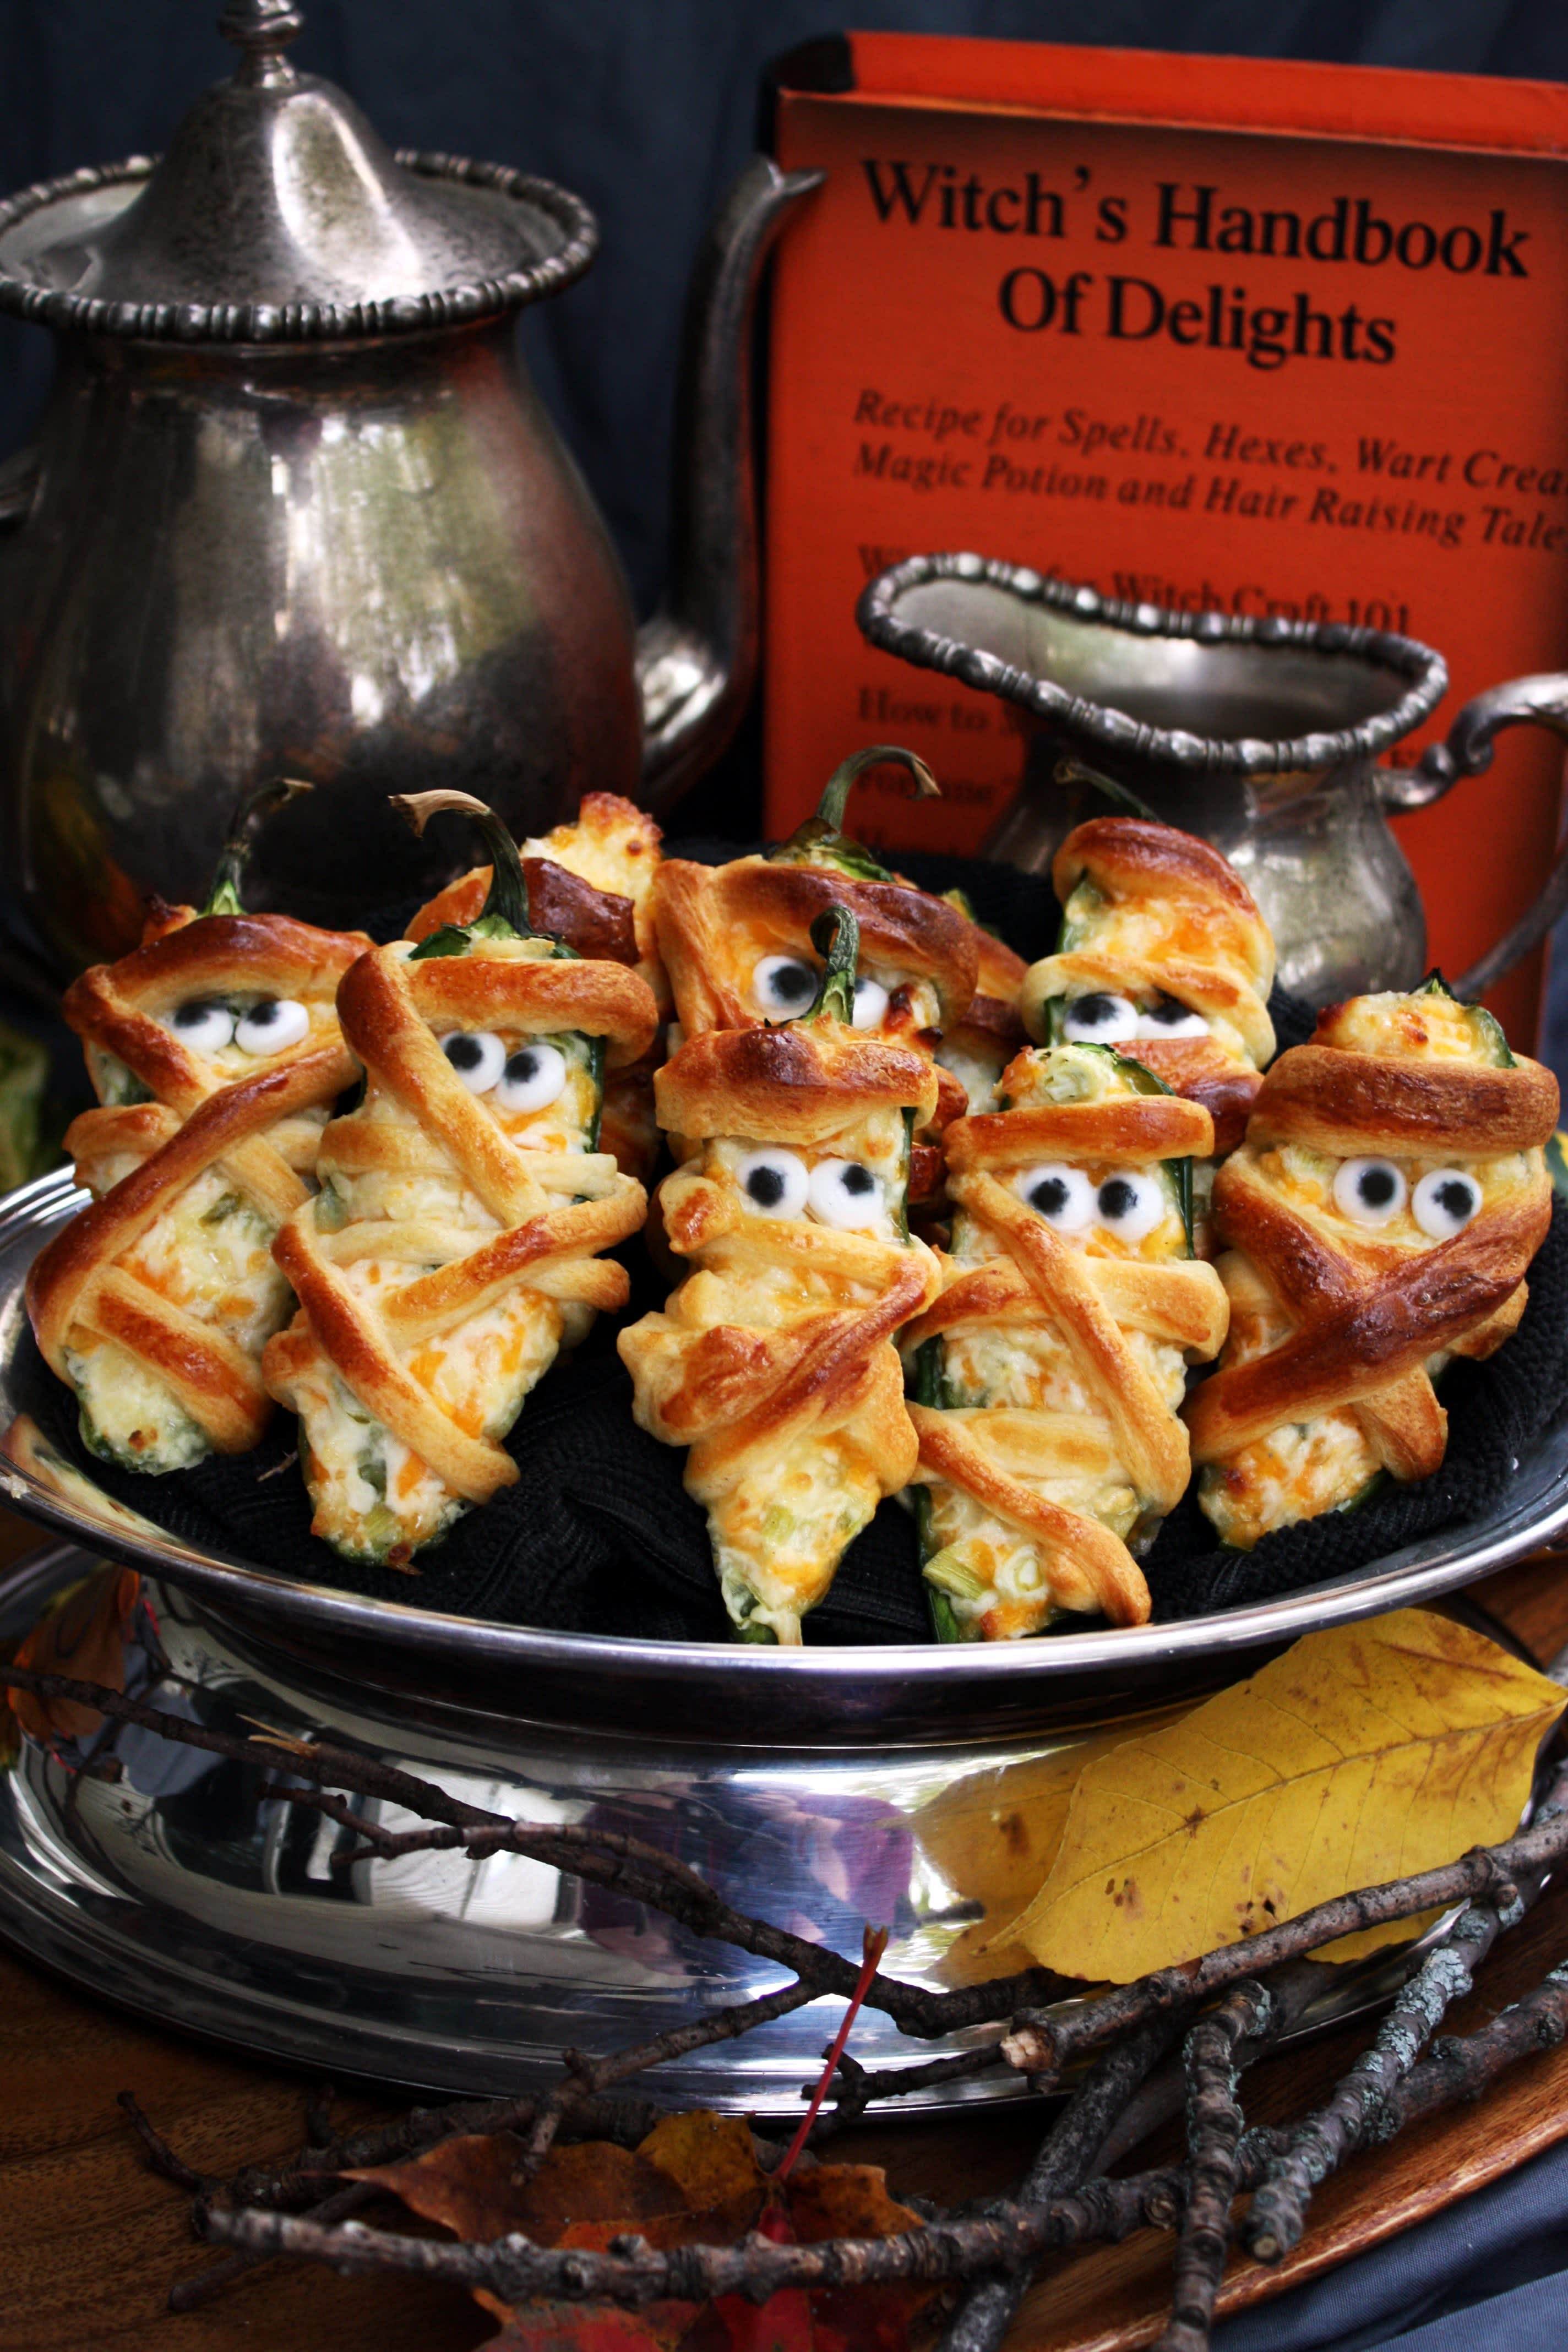 We Tried 7 Popular Halloween Recipes from Pinterest (So You Don't Have To): gallery image 1